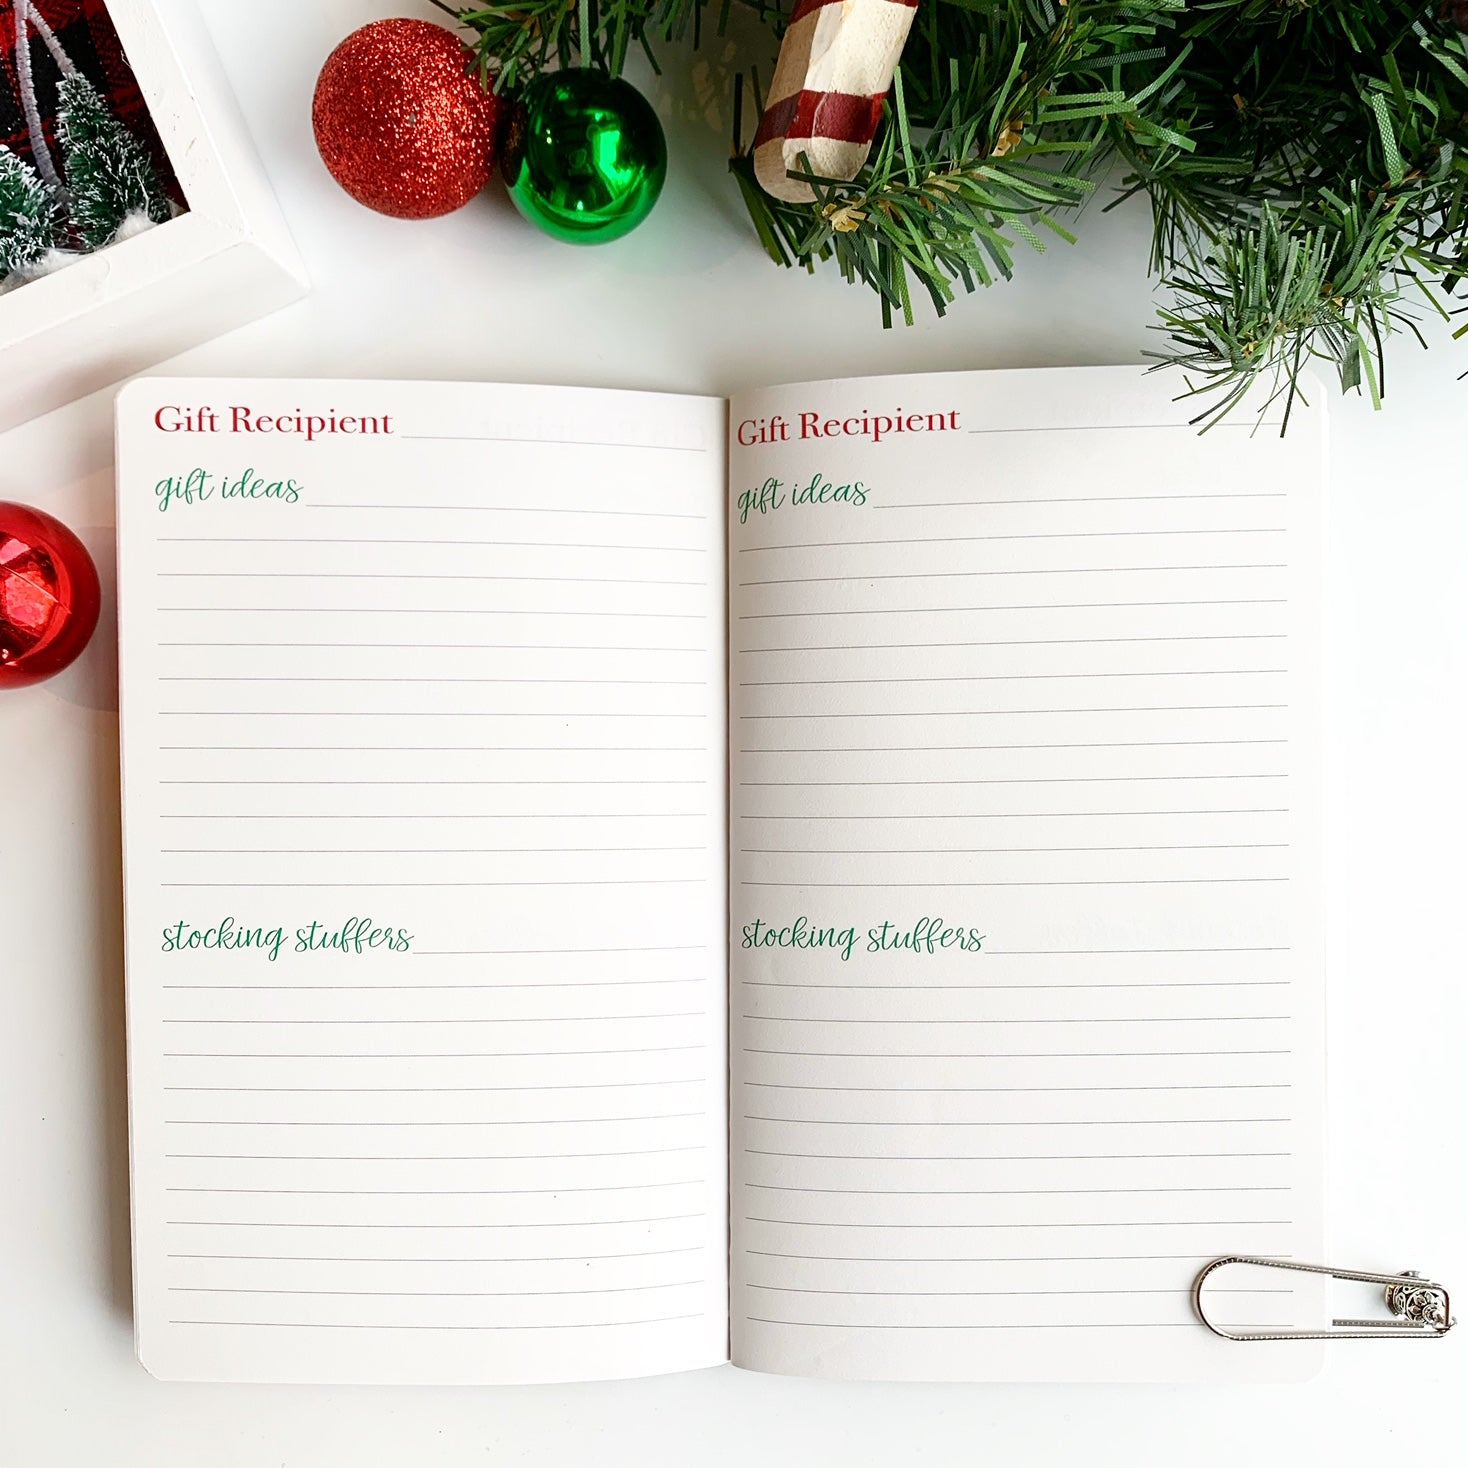 Christmas Planner Gift Recipient Pages